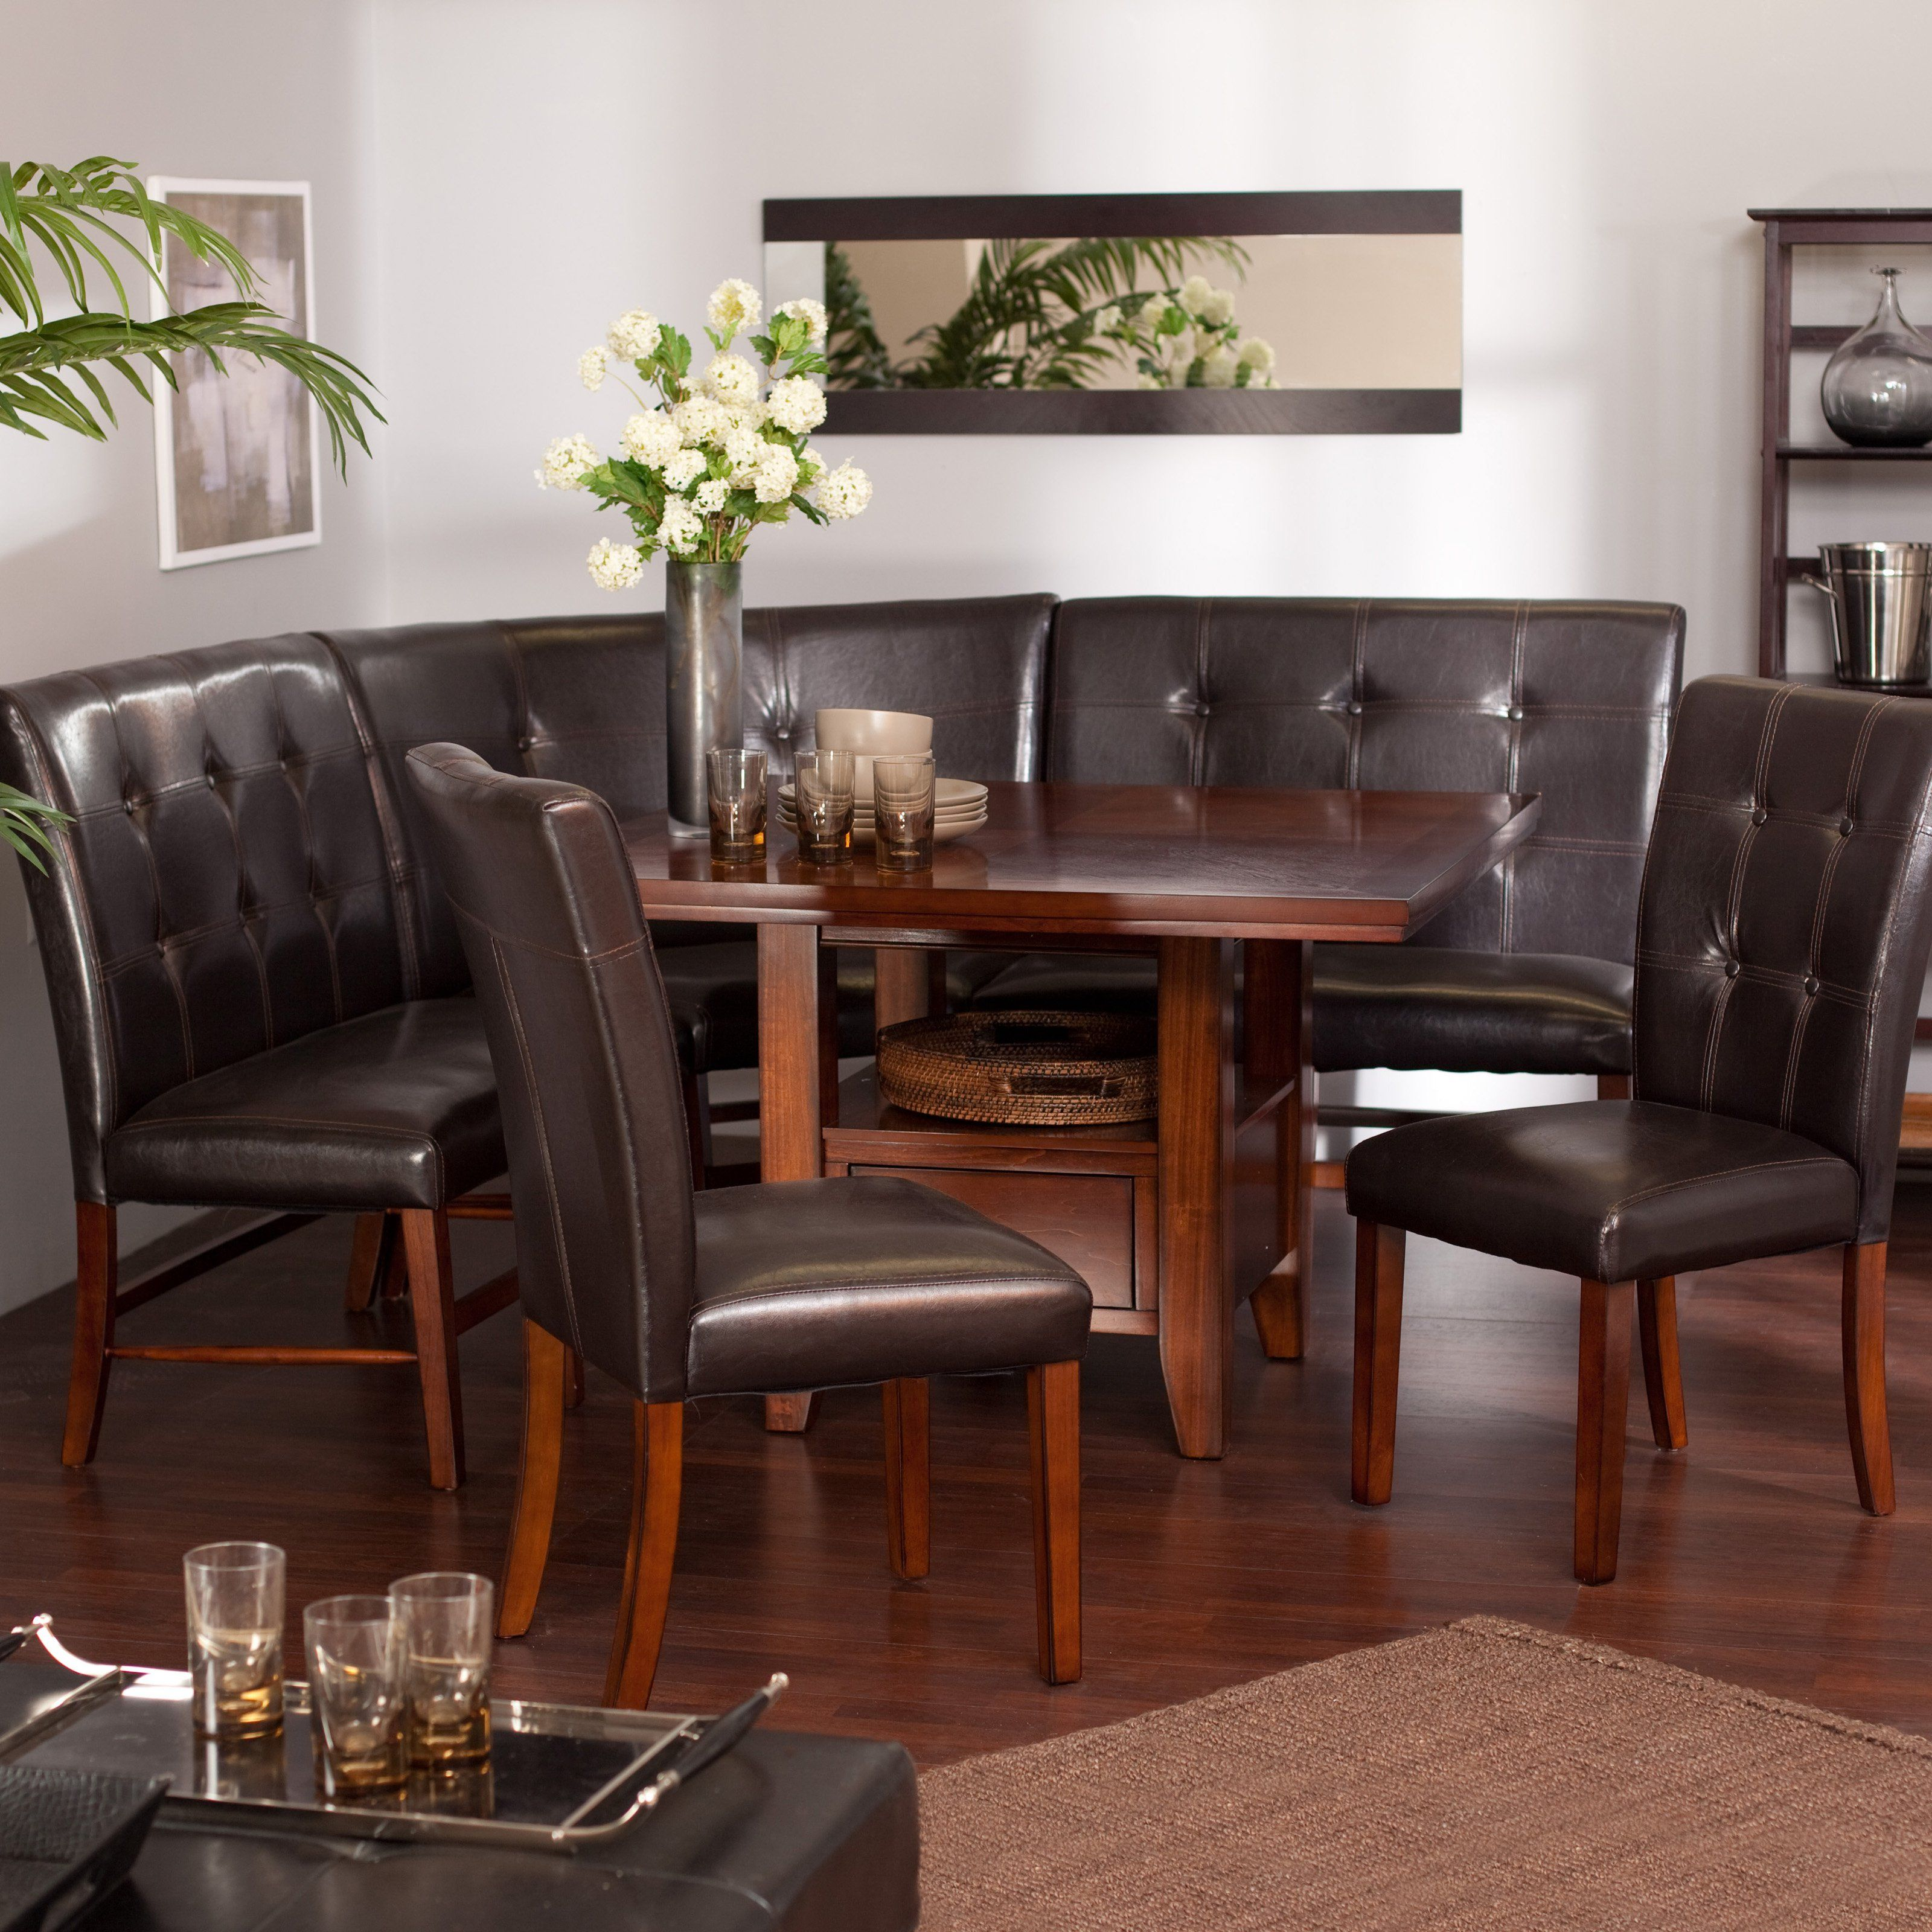 Beau Ravella 6 Piece Dining Nook Set   Whether Breakfast, Brunch, Appetizers, Or  Cocktails Are On Your Menu For The Day Or Evening, The Ravella 6 Piece  Breakfast ...